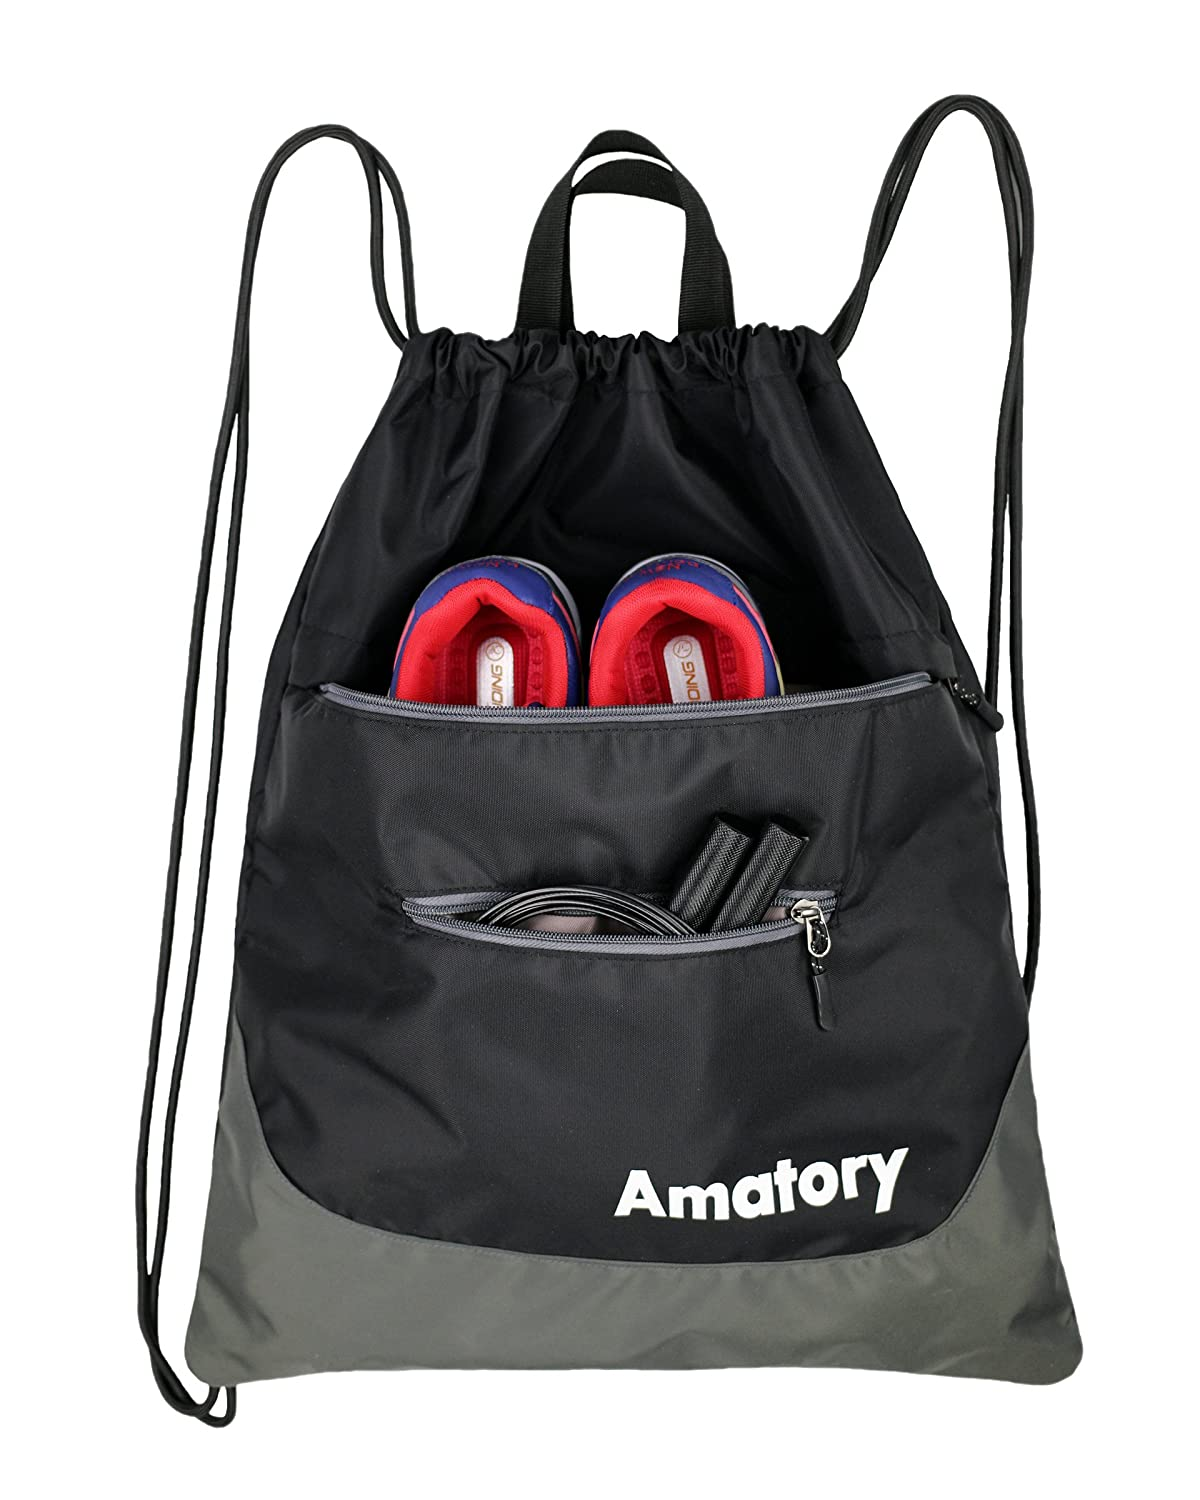 Amatory Drawstring Backpack Sports Athletic Gym Waterproof String Bag Cinch Sack Sackpack Gymsack School Bookbag Men Women Boys Girls